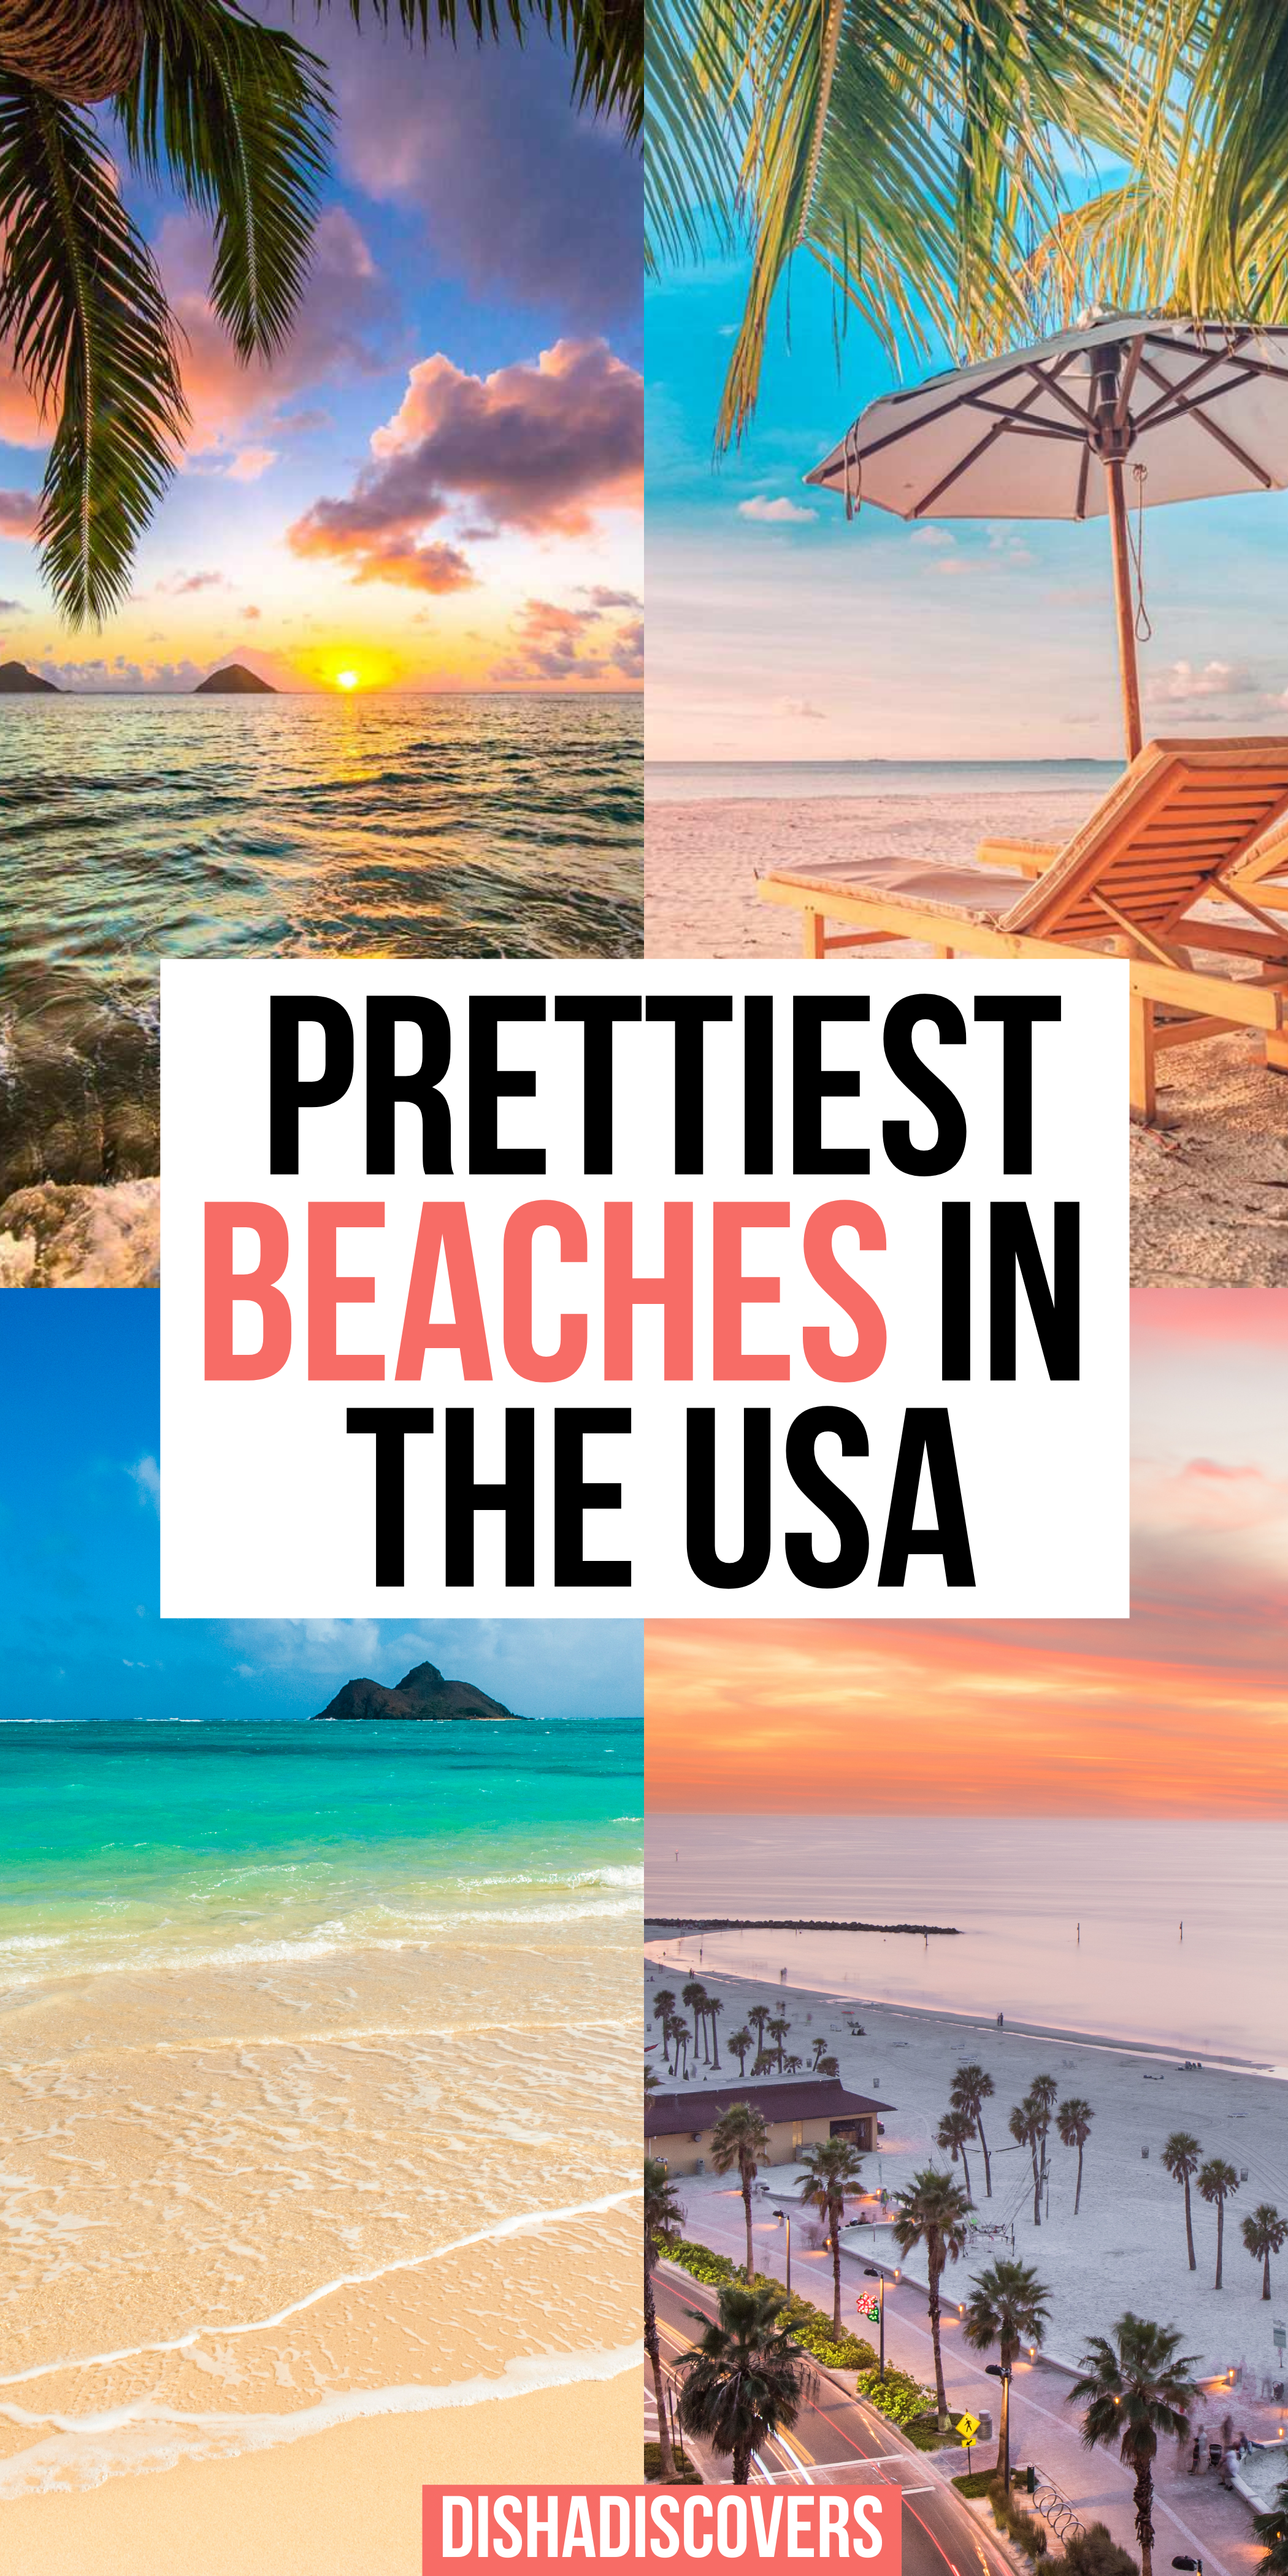 Best Beaches In The Usa 16 Breathtaking Shorelines In 2021 Best Beaches To Visit Us Vacation Spots Usa Beaches